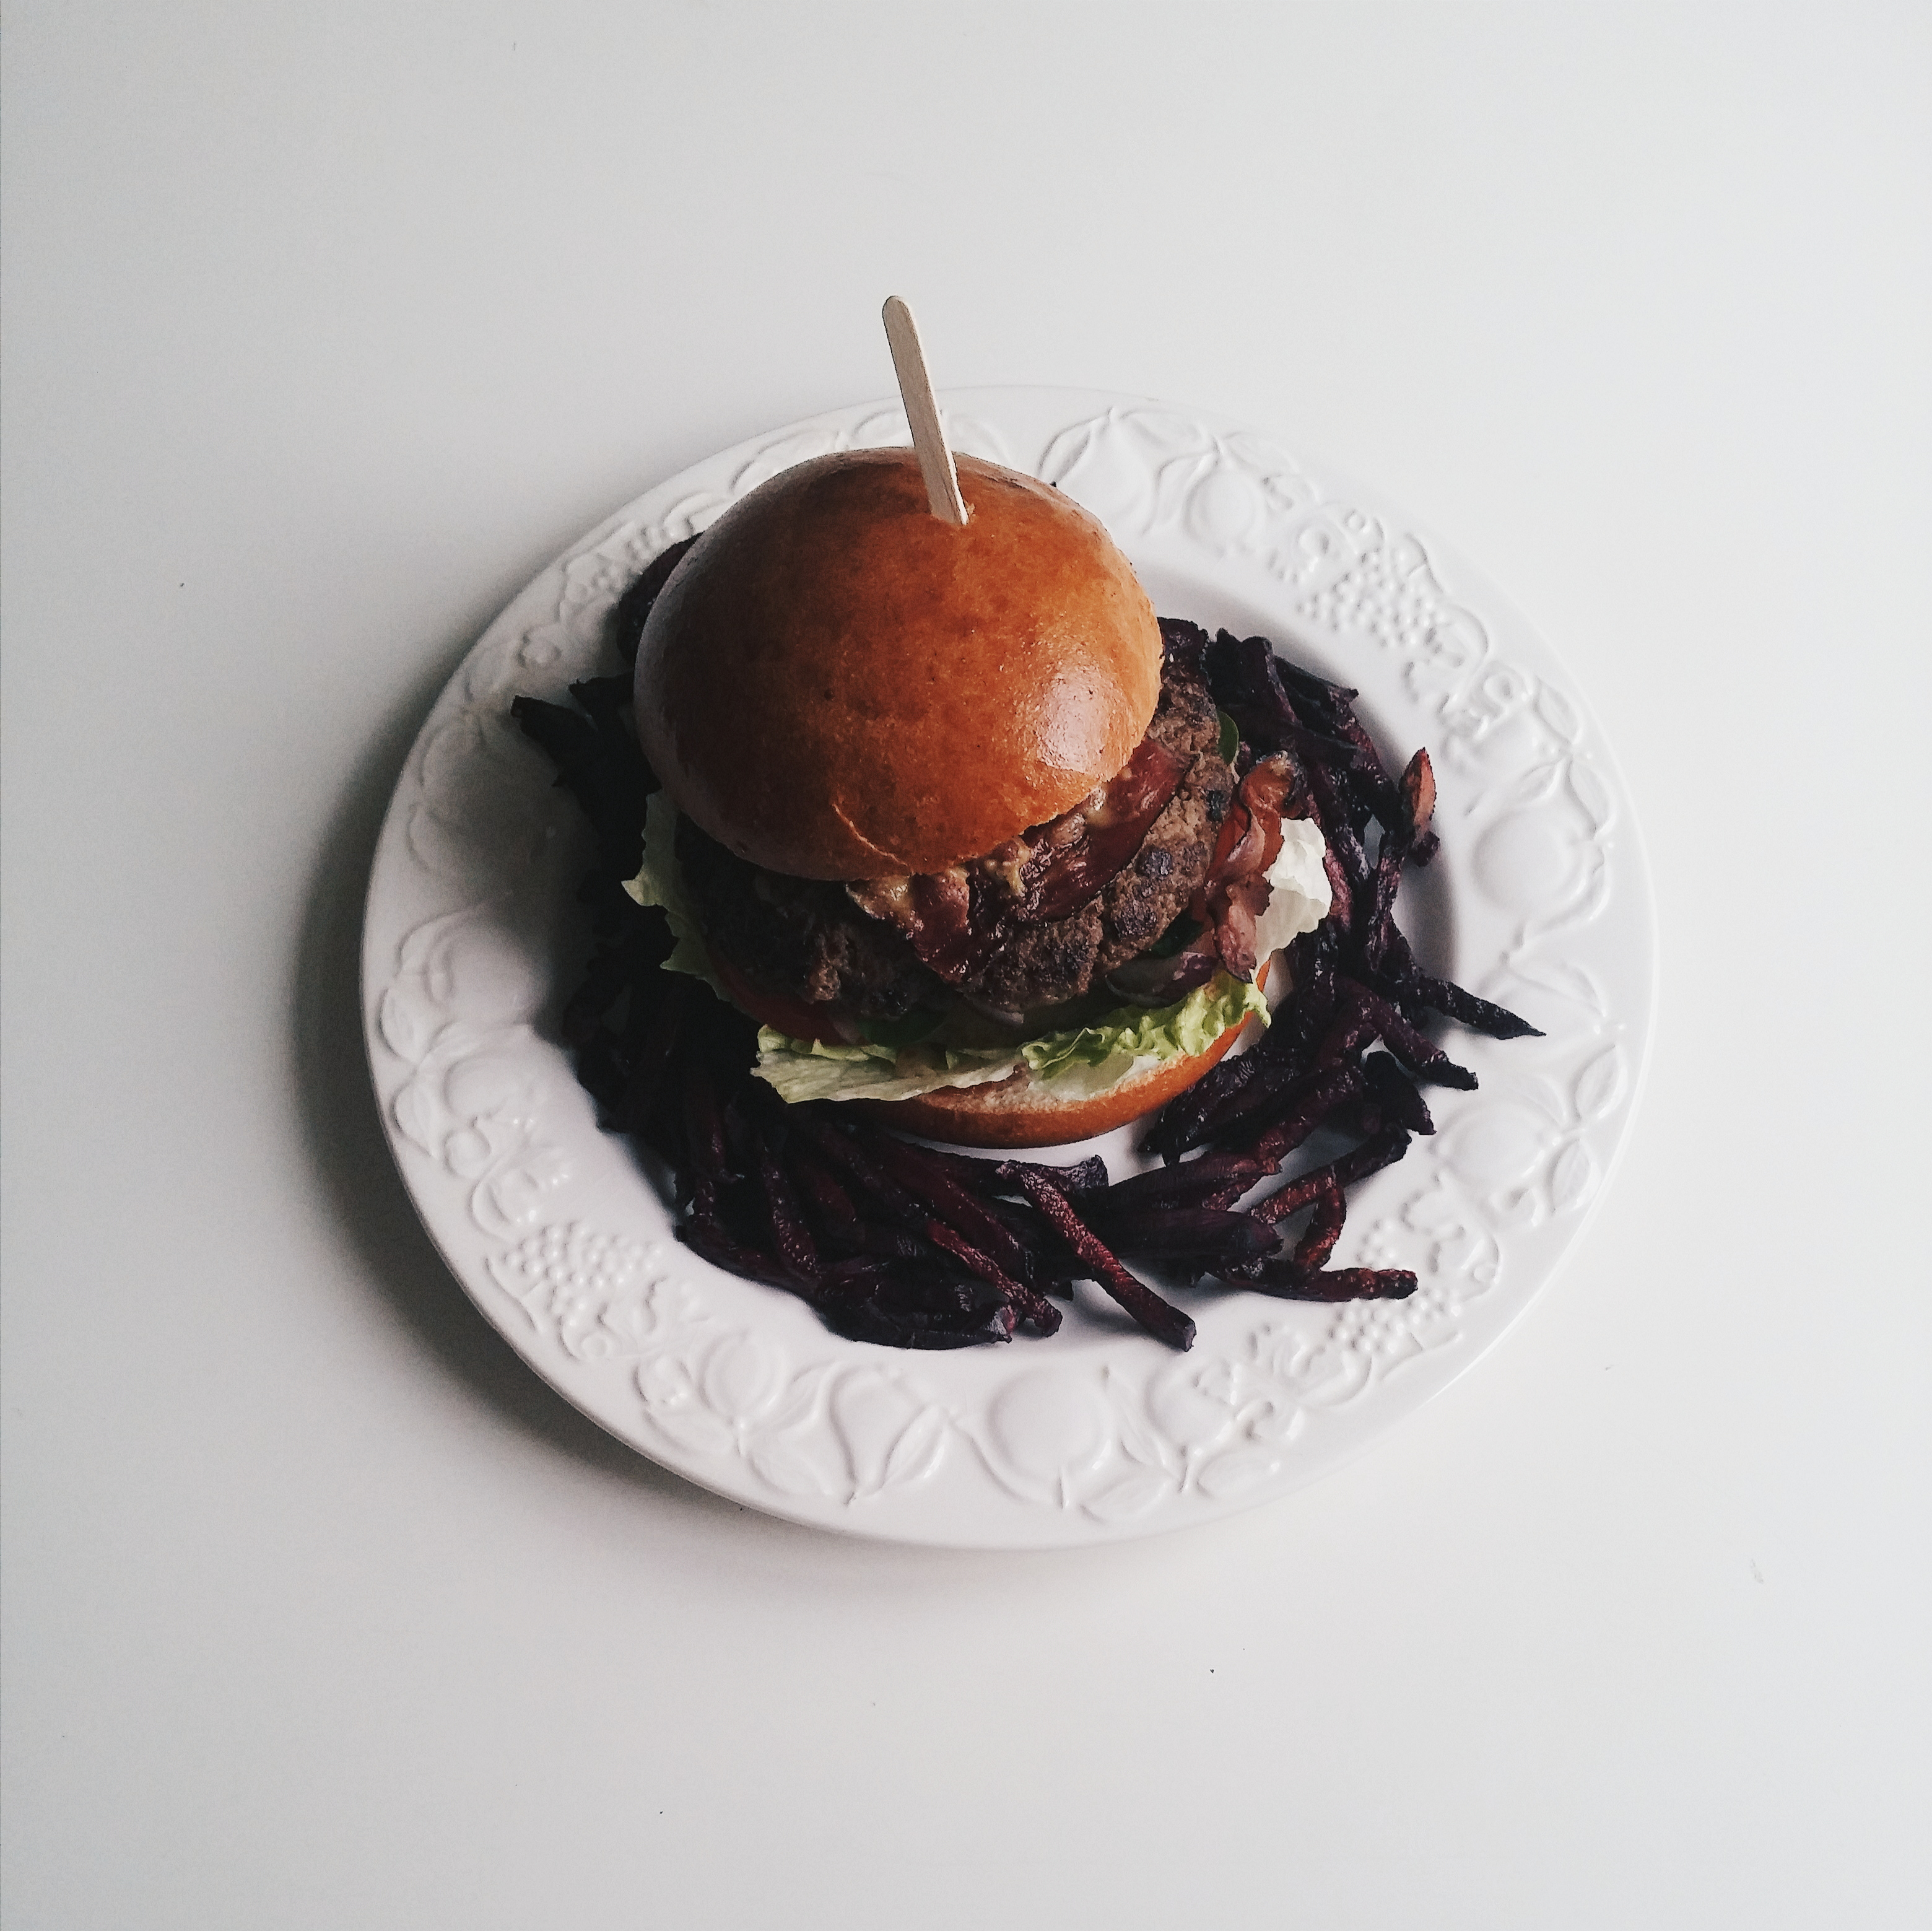 Burger from above on a white background